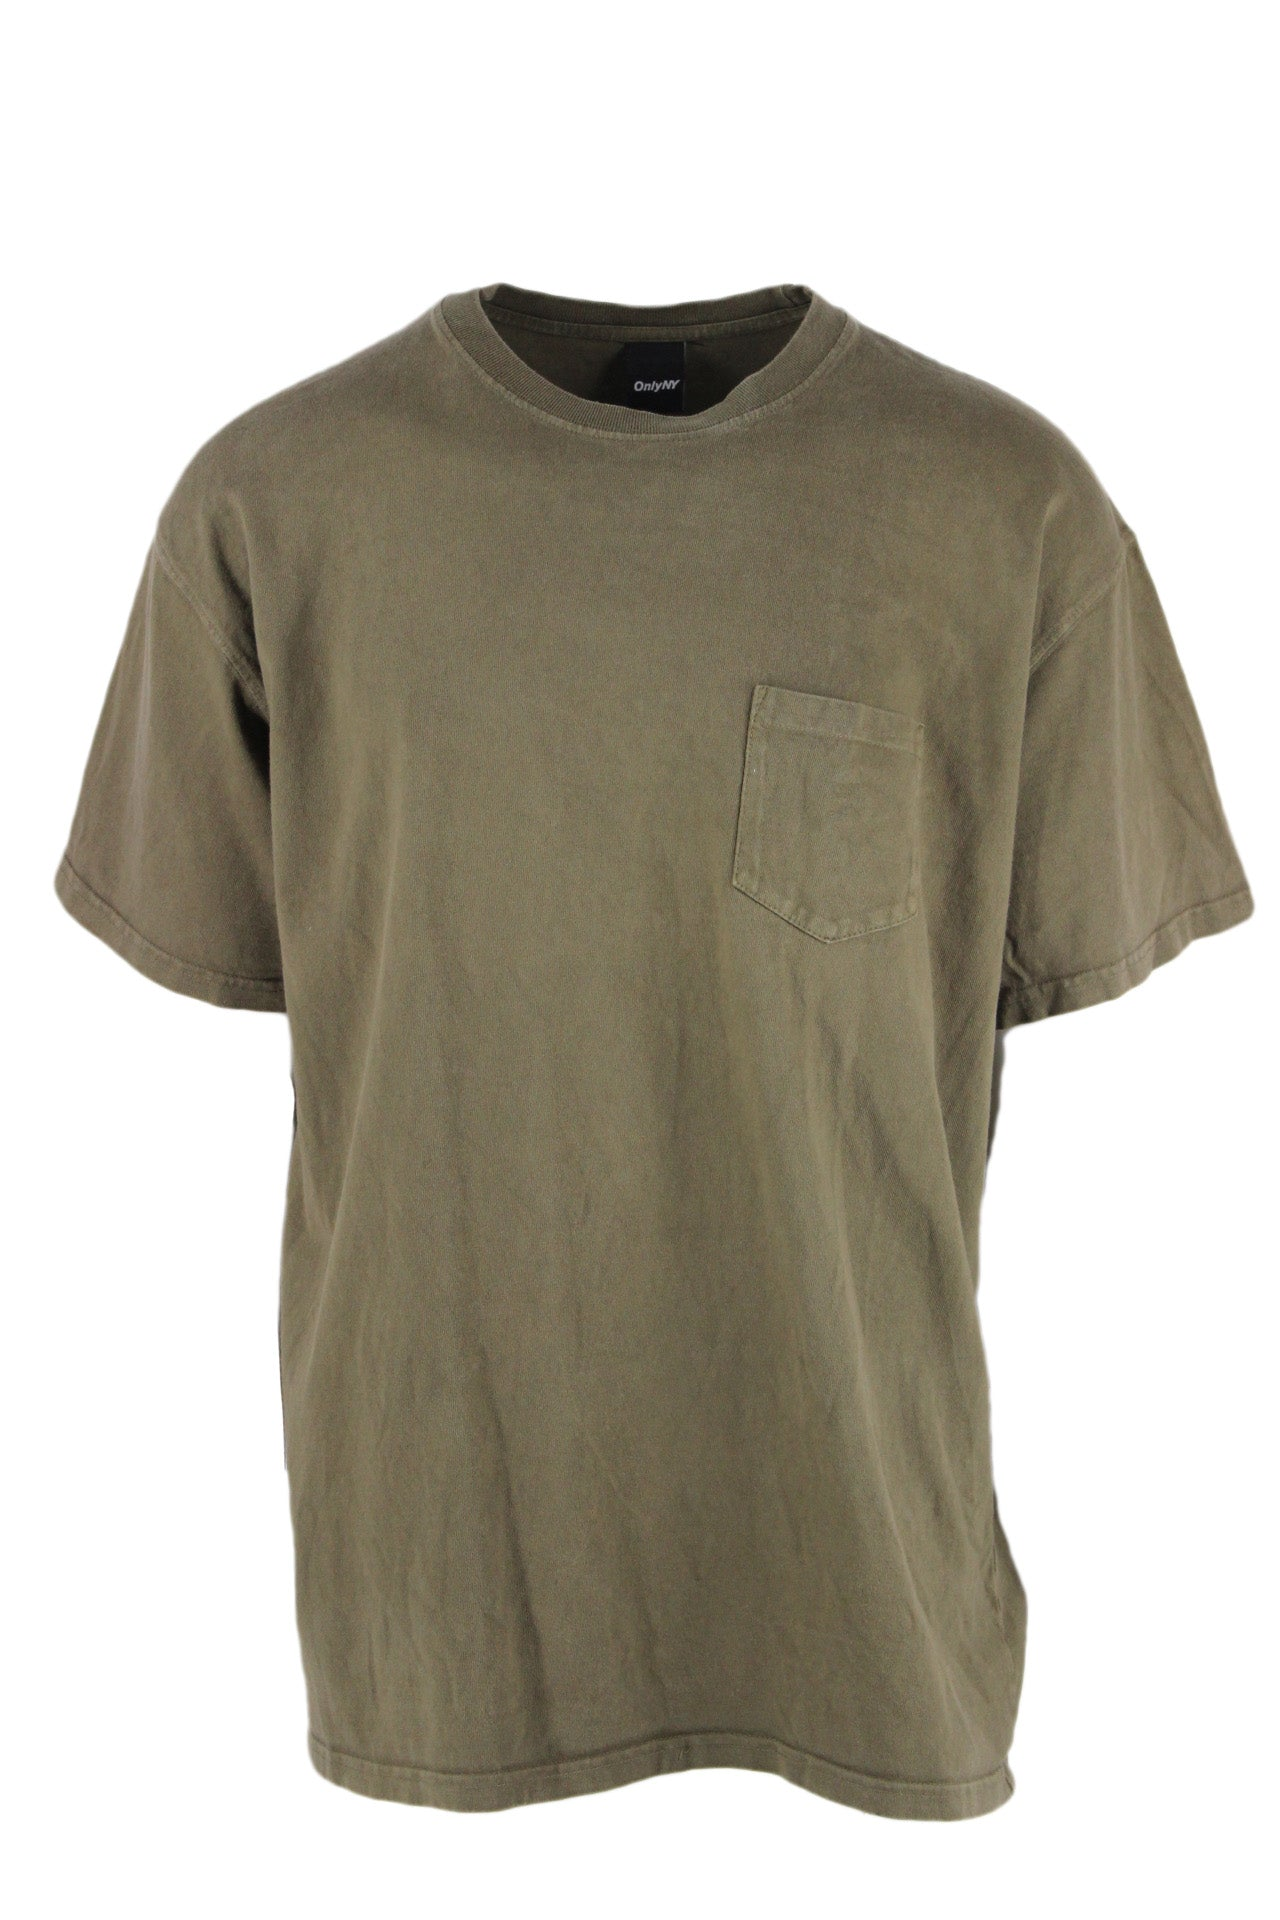 only ny olive green pocket tee. features short sleeves & a round neckline.